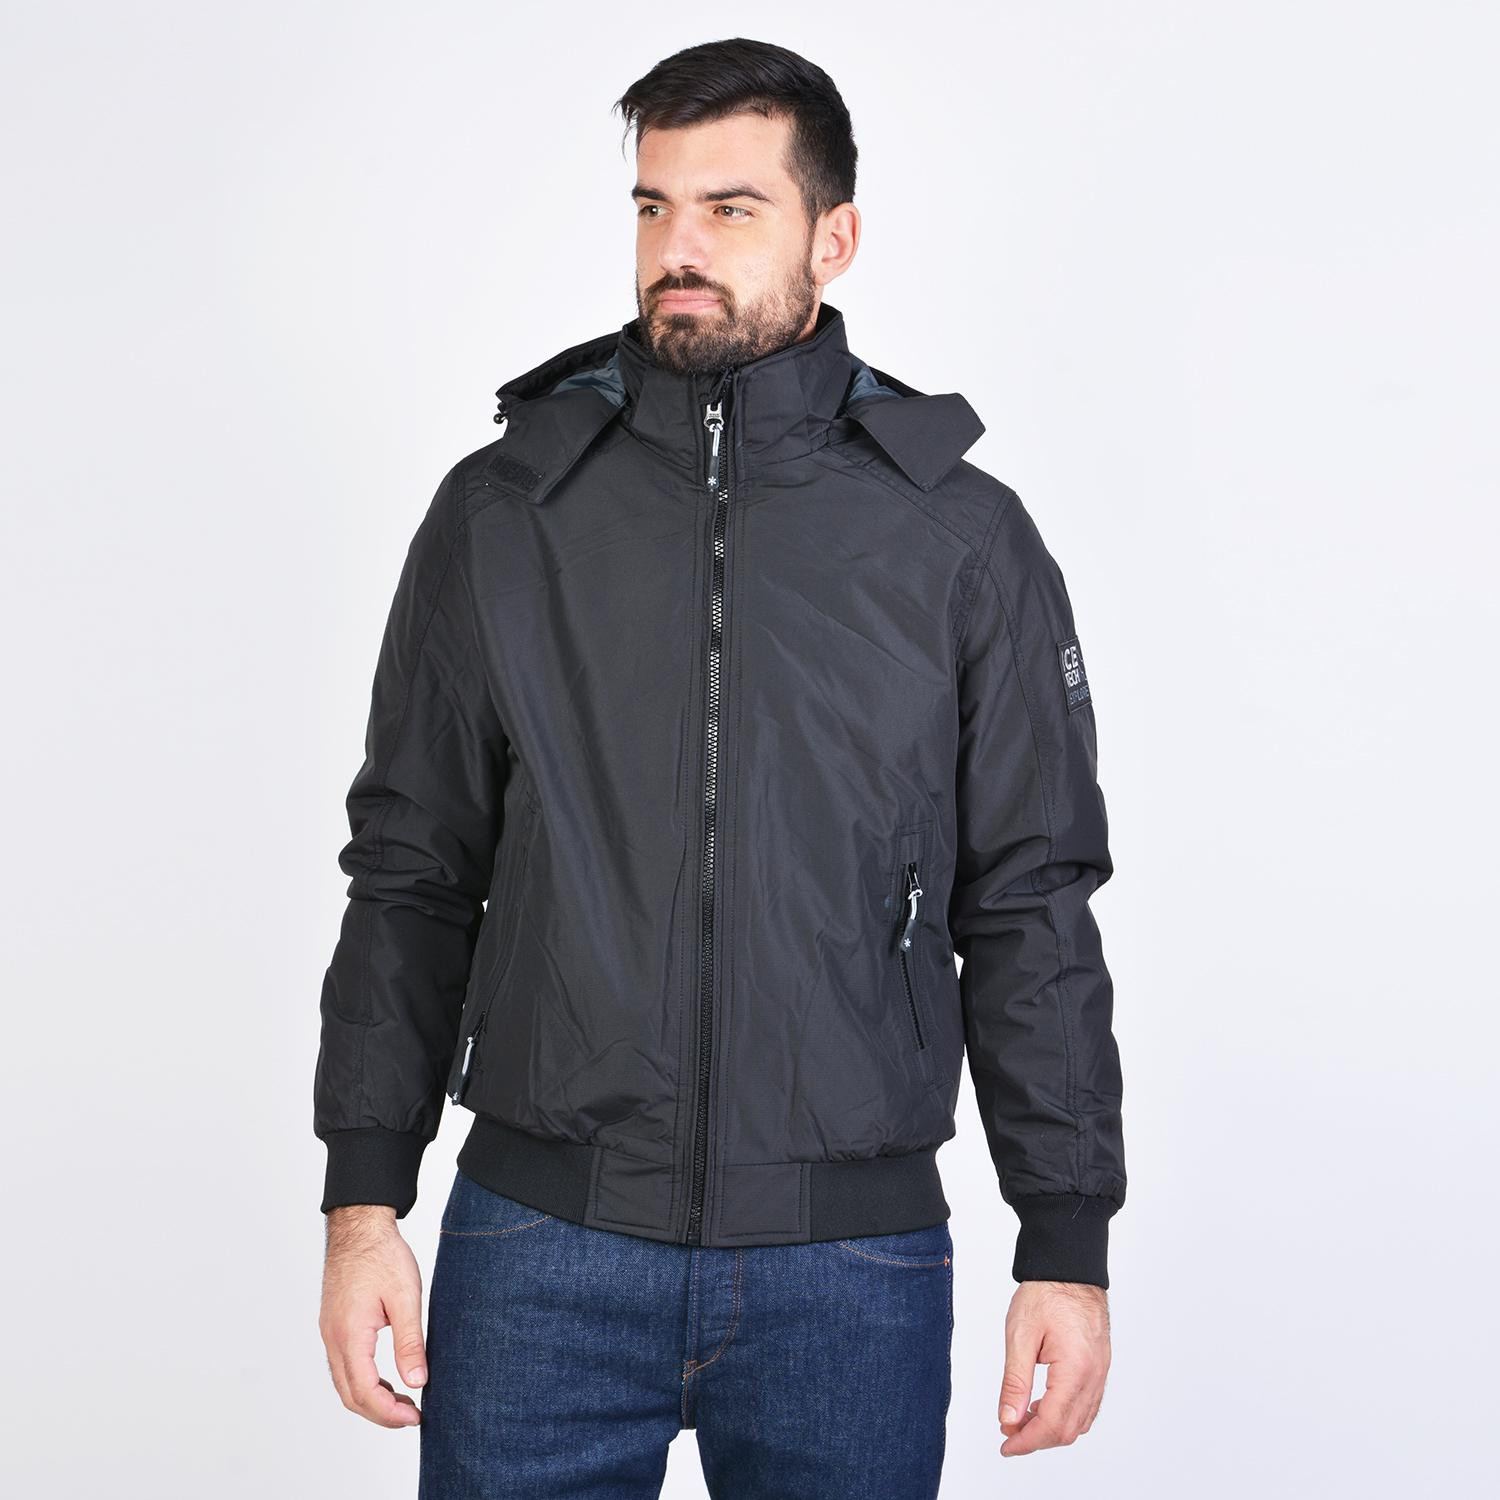 Ice Tech MENS JACKETS (9000042518_1469)